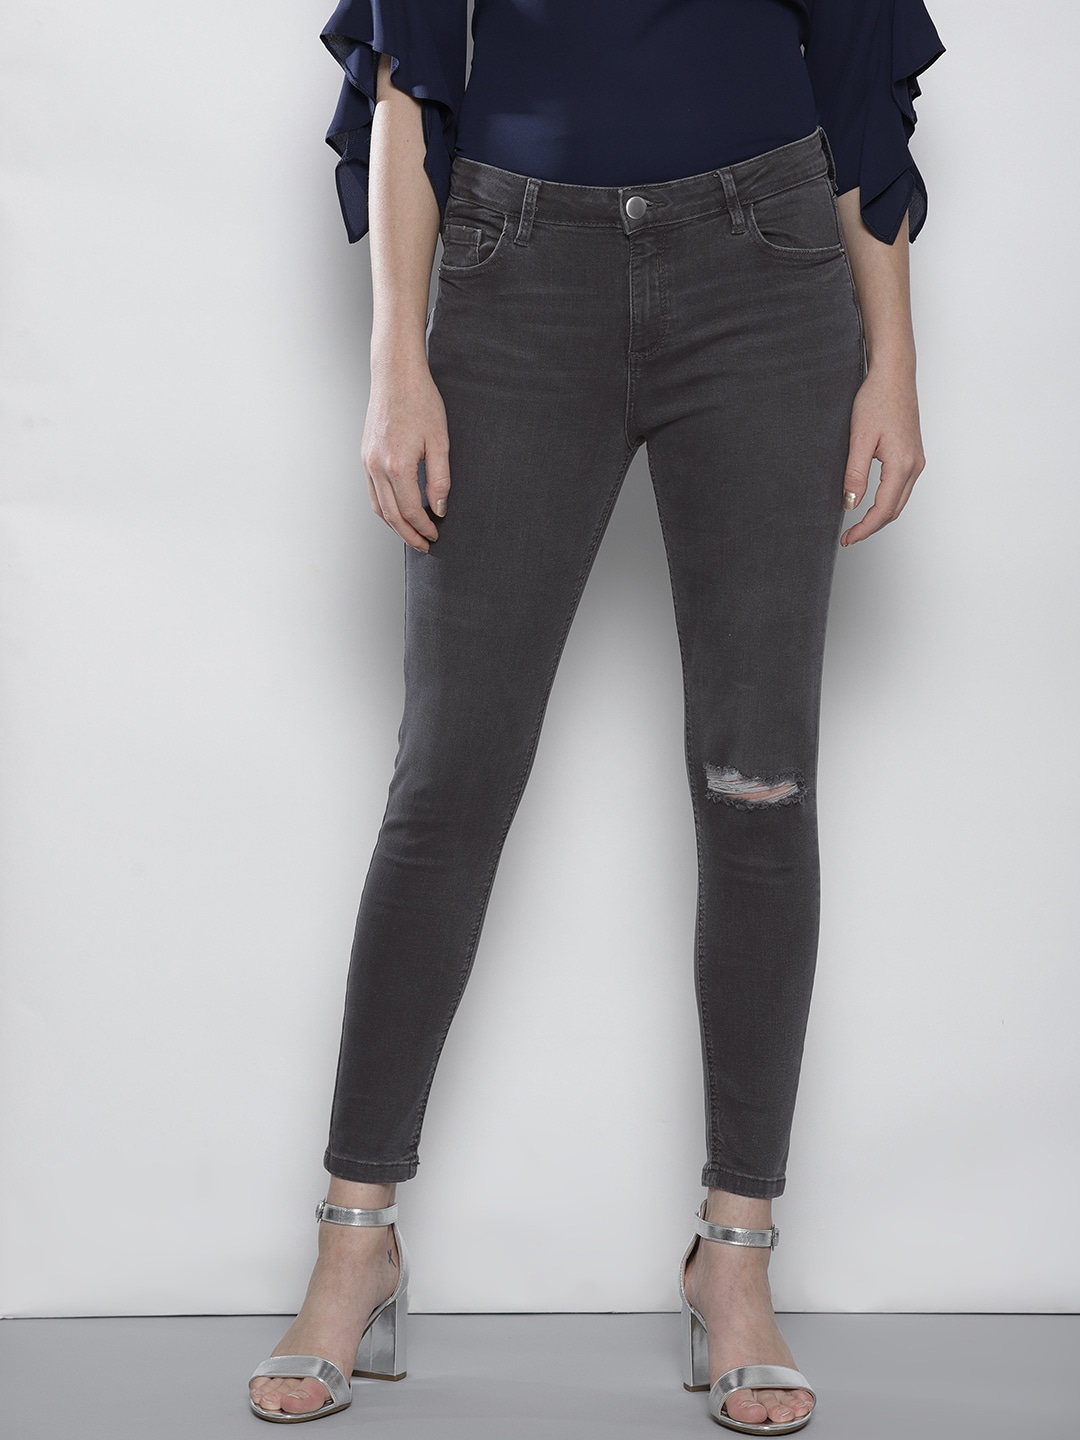 59145417a846 Dorothy Perkins - Buy Dorothy Perkins collection for women online - Myntra